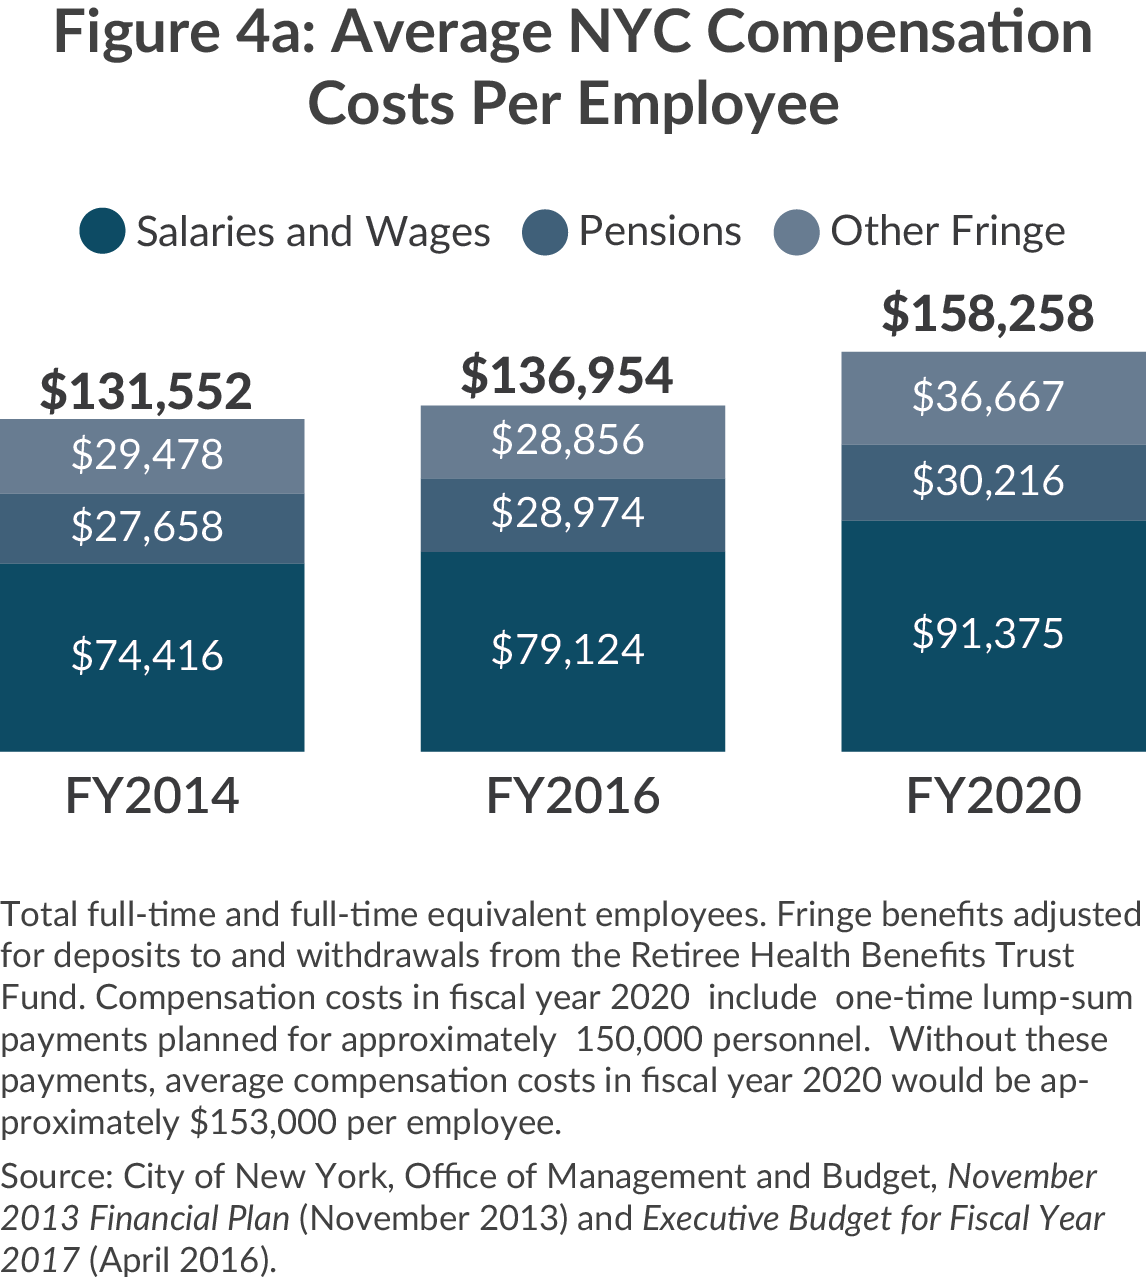 Average Compensation Cost Per NYC Employee